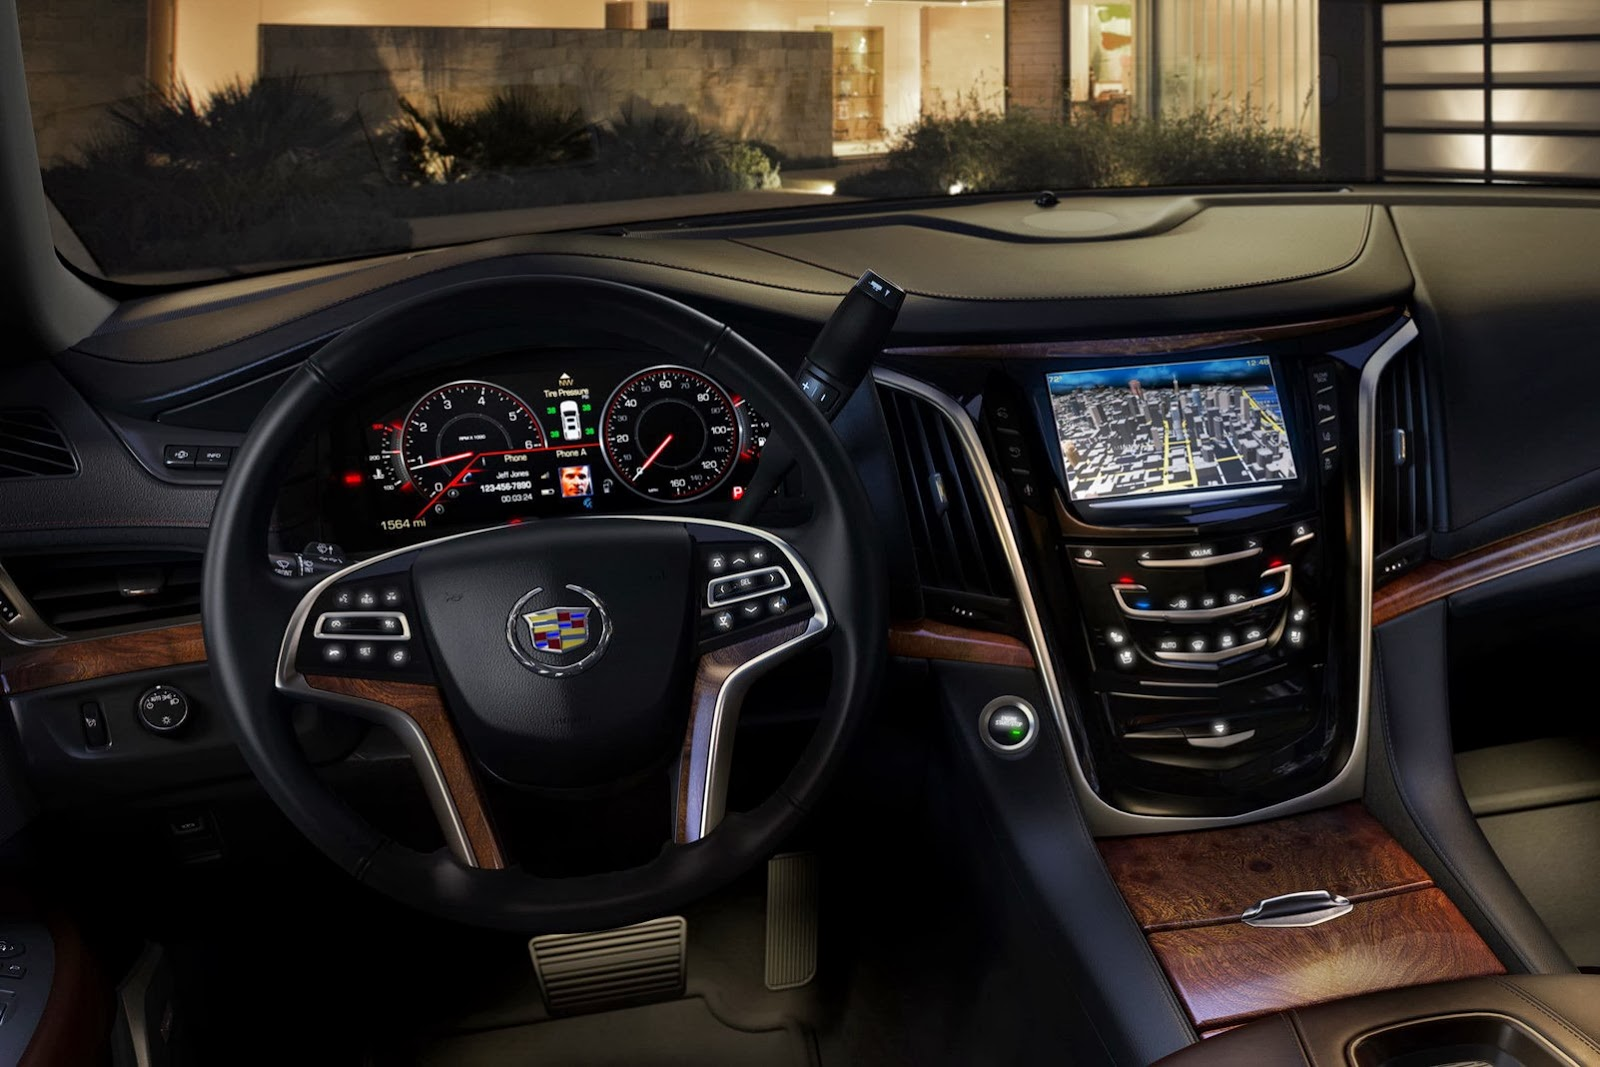 2014 Cadillacs Escalades Crossover Pictures to Pin on Pinterest